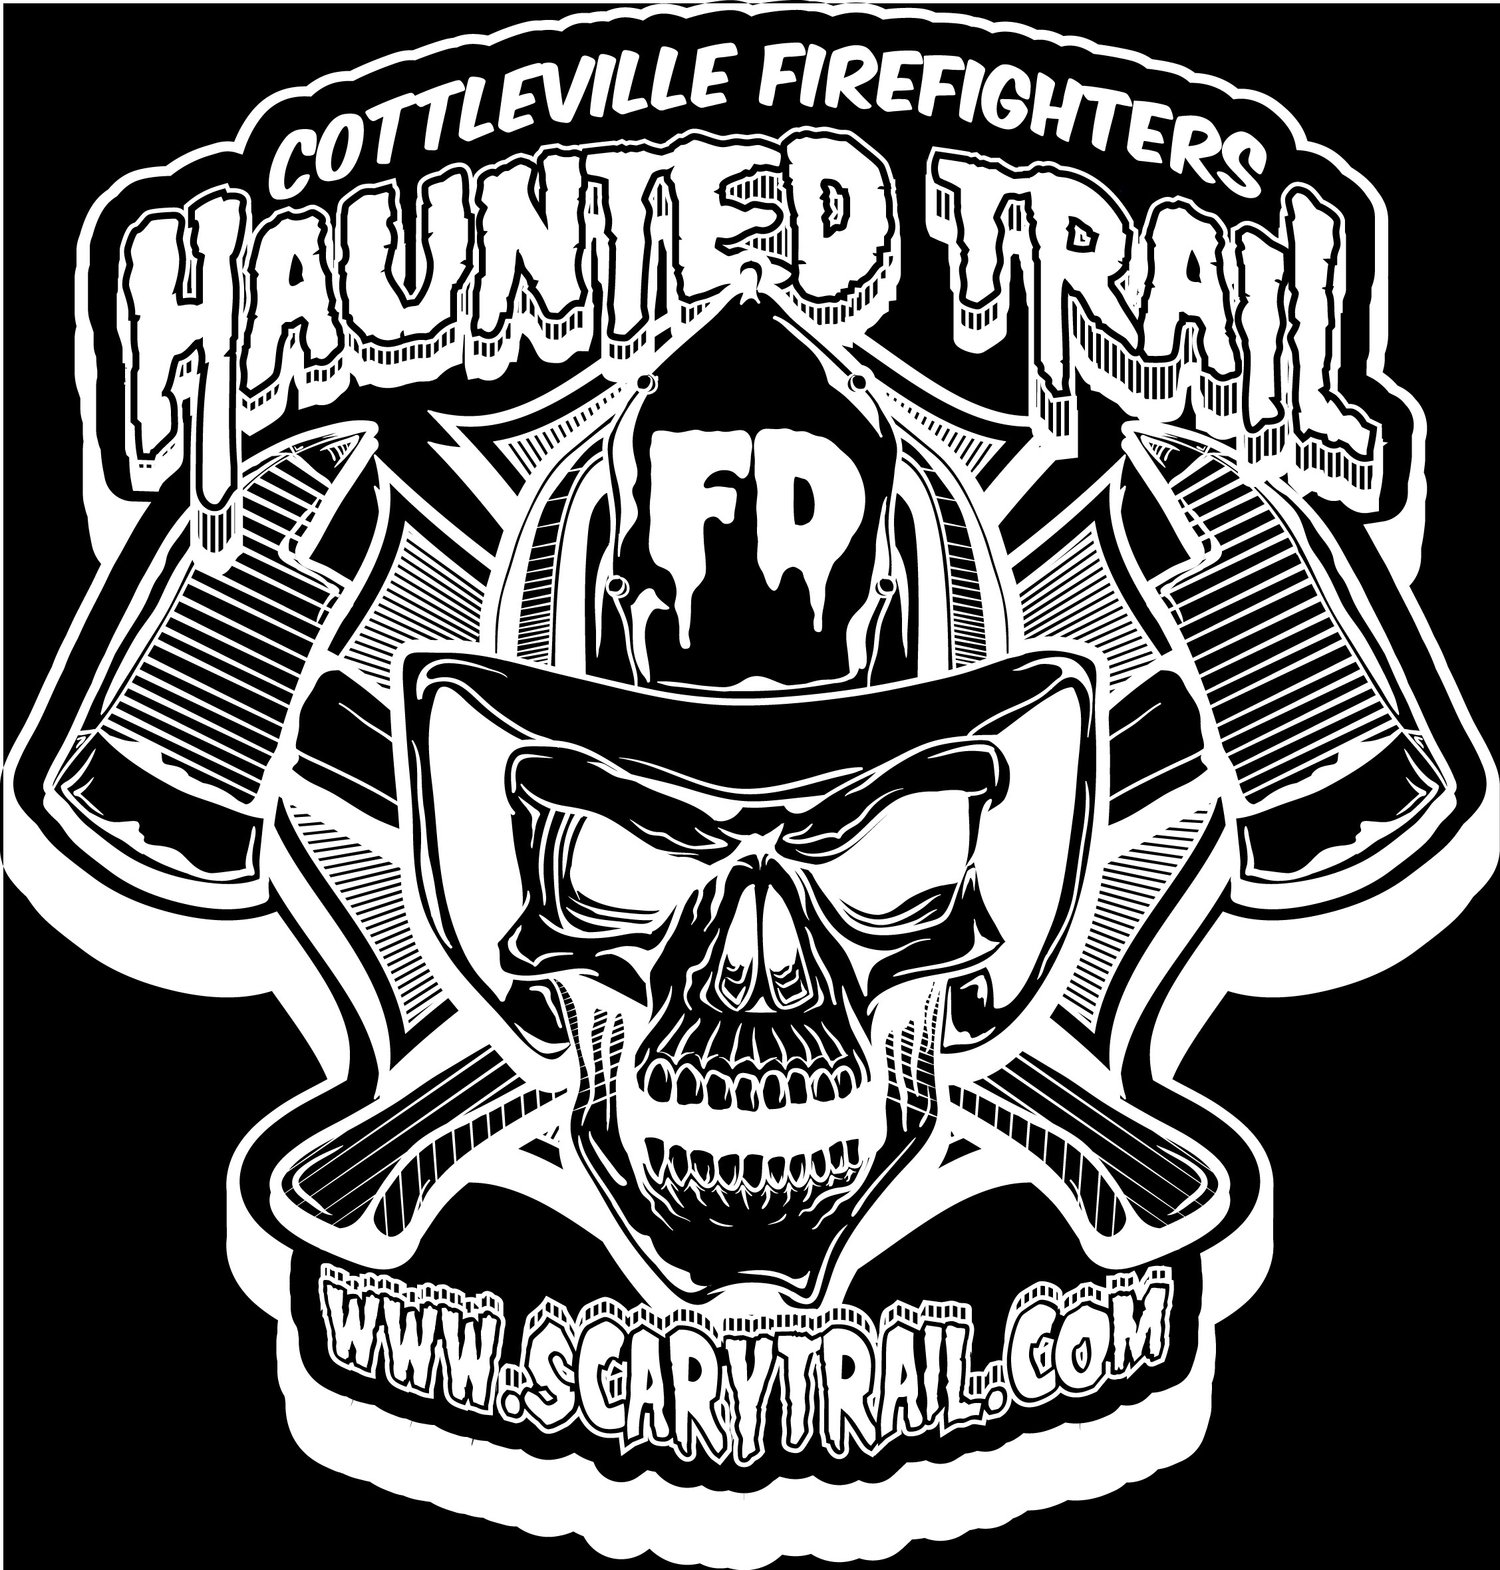 Cottleville Firefighters Present...